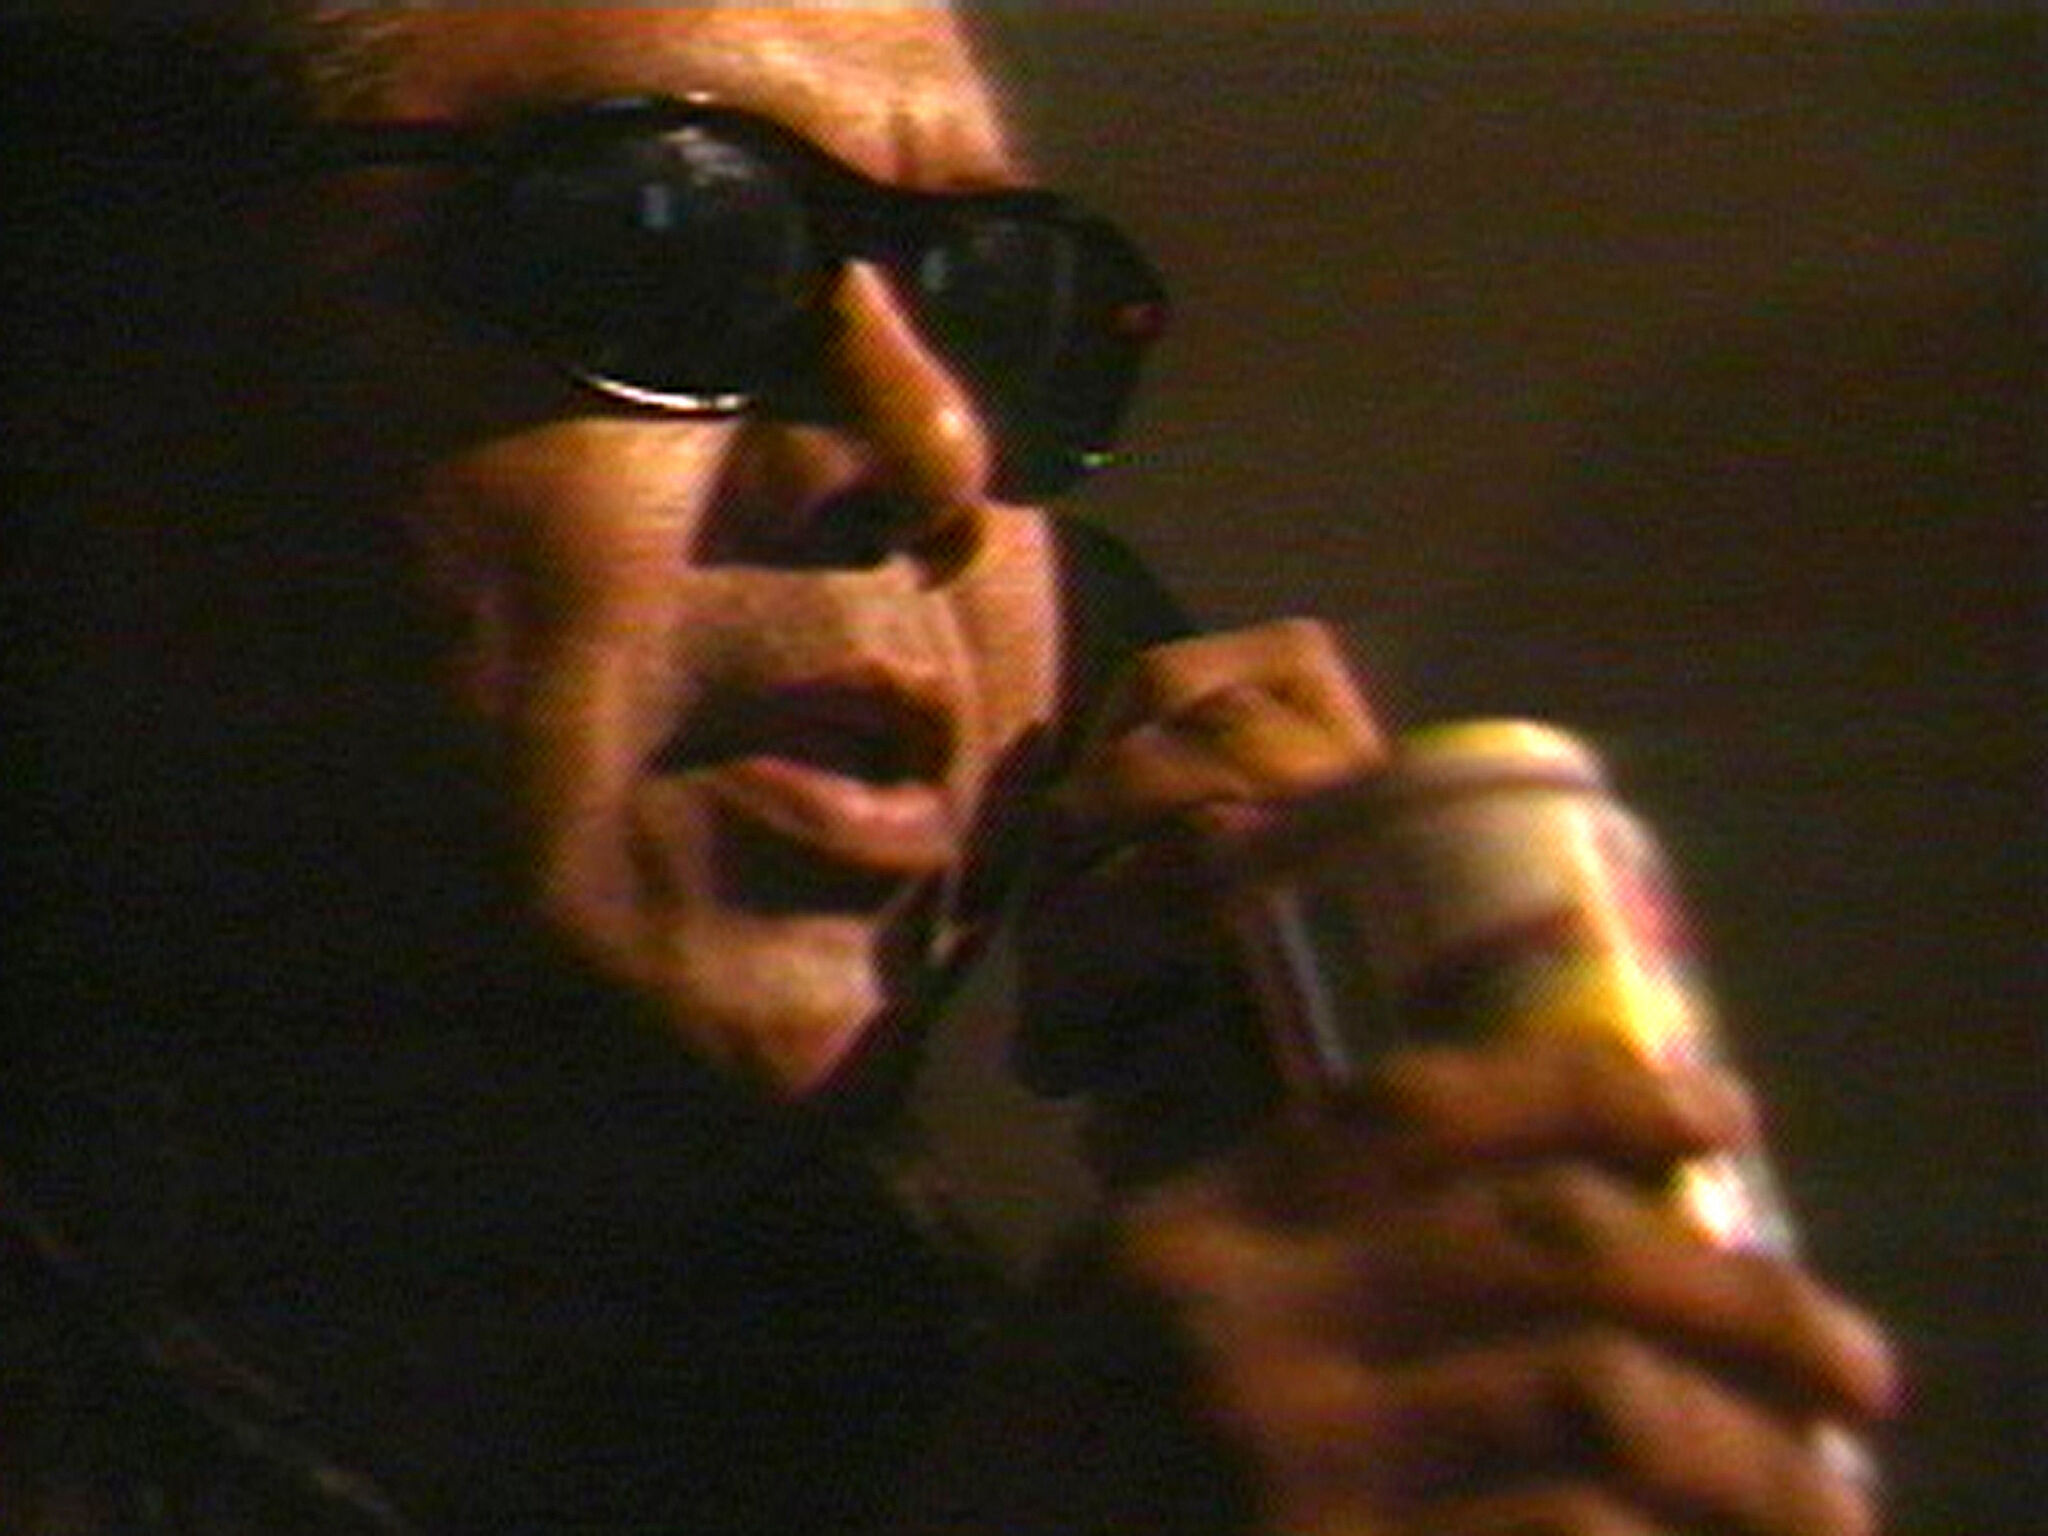 A close-up video still of a man wearing sunglasses, holding a can and a phone.